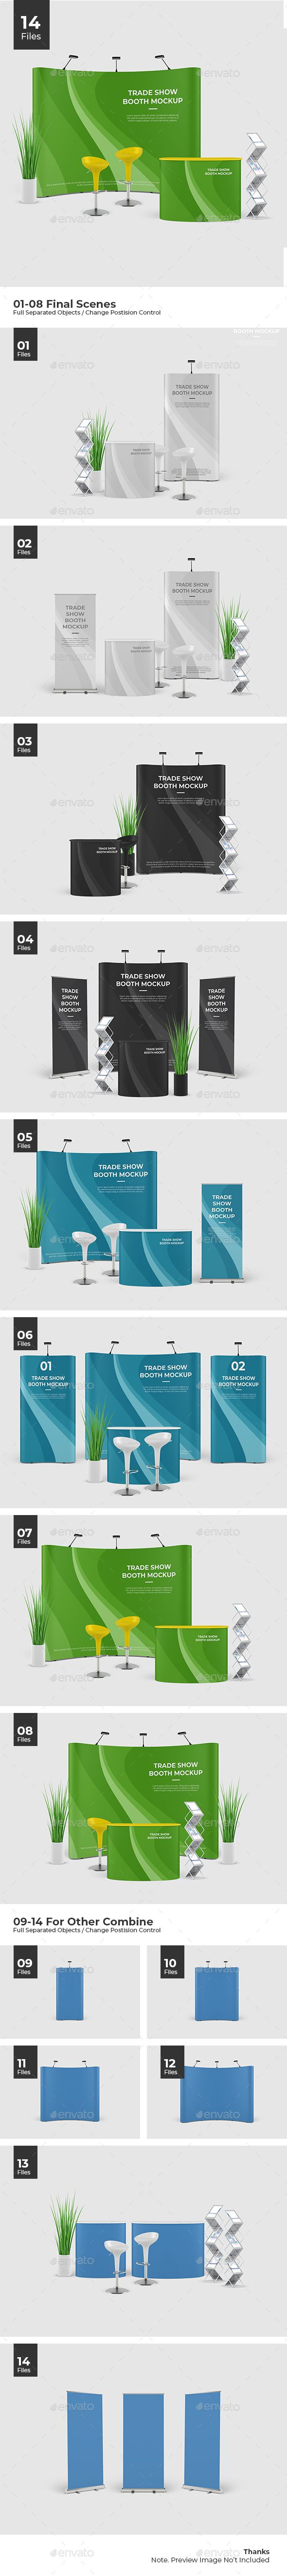 Print Mockup - Event Stand / Trade Show Booth Mockup / Pop Up Stand - Print Mockup by docqueen.  #HappyTuesday #Vectors #TuesdayMotivation  #CyberMonday #Logo #Graphic #BlackFriday #TuesdayThoughts #TuesdayWisdom #UIUX #PresentationTemplate#TuesdayFeeling #WebElements #DesignTemplate #UserInterface